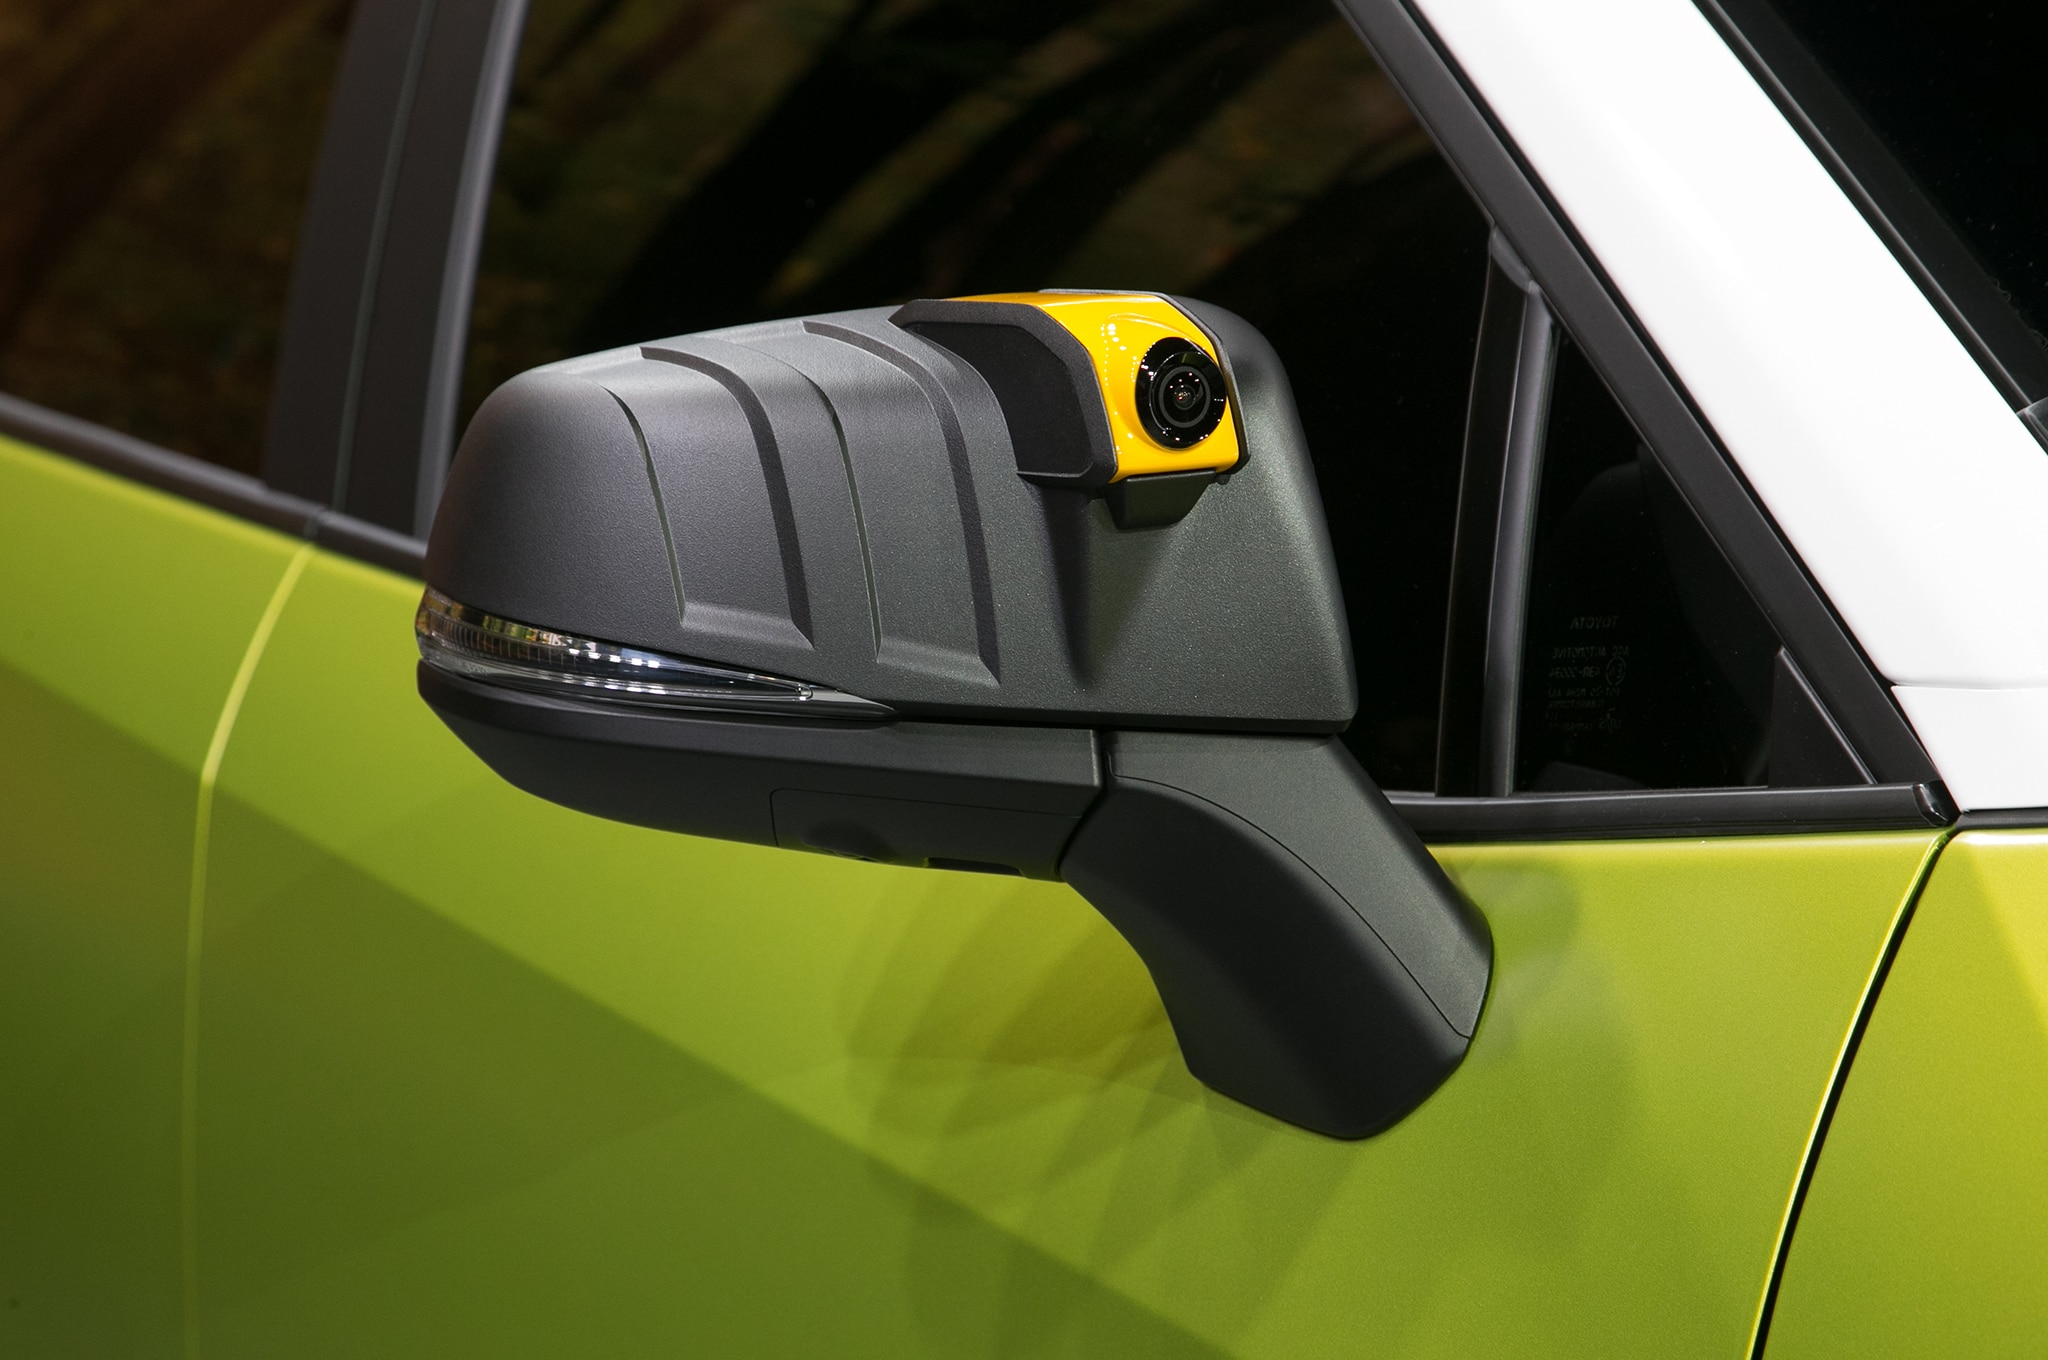 http://st.automobilemag.com/uploads/sites/11/2017/11/Toyota-FT-AC-Concept-side-mirror-camera.jpg